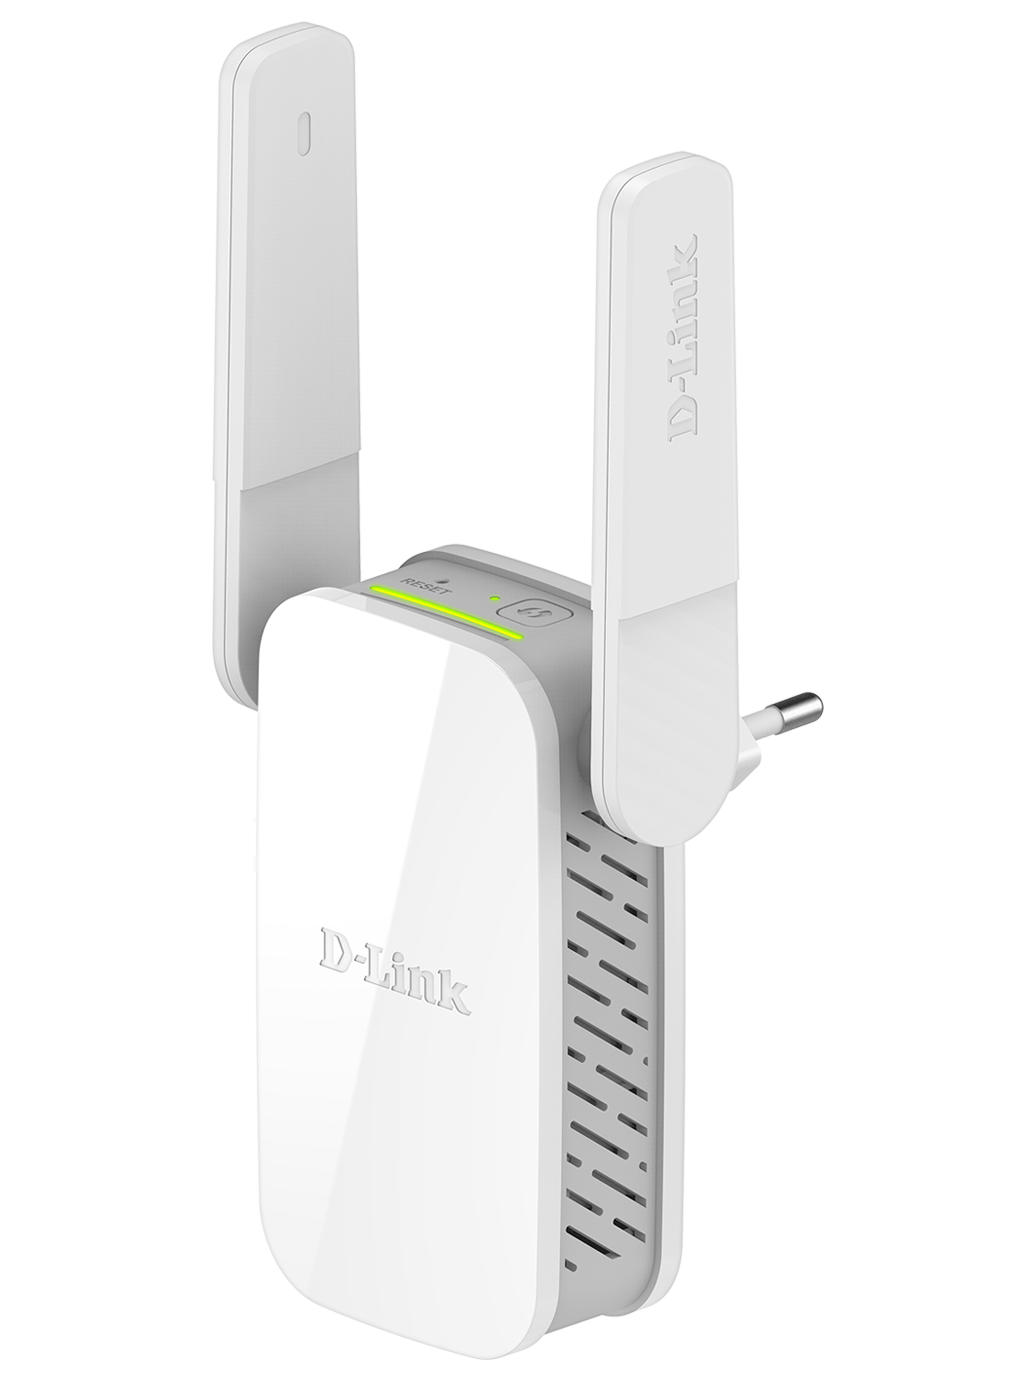 D-Link-Wireless-Repeater-AC1200 WLAN